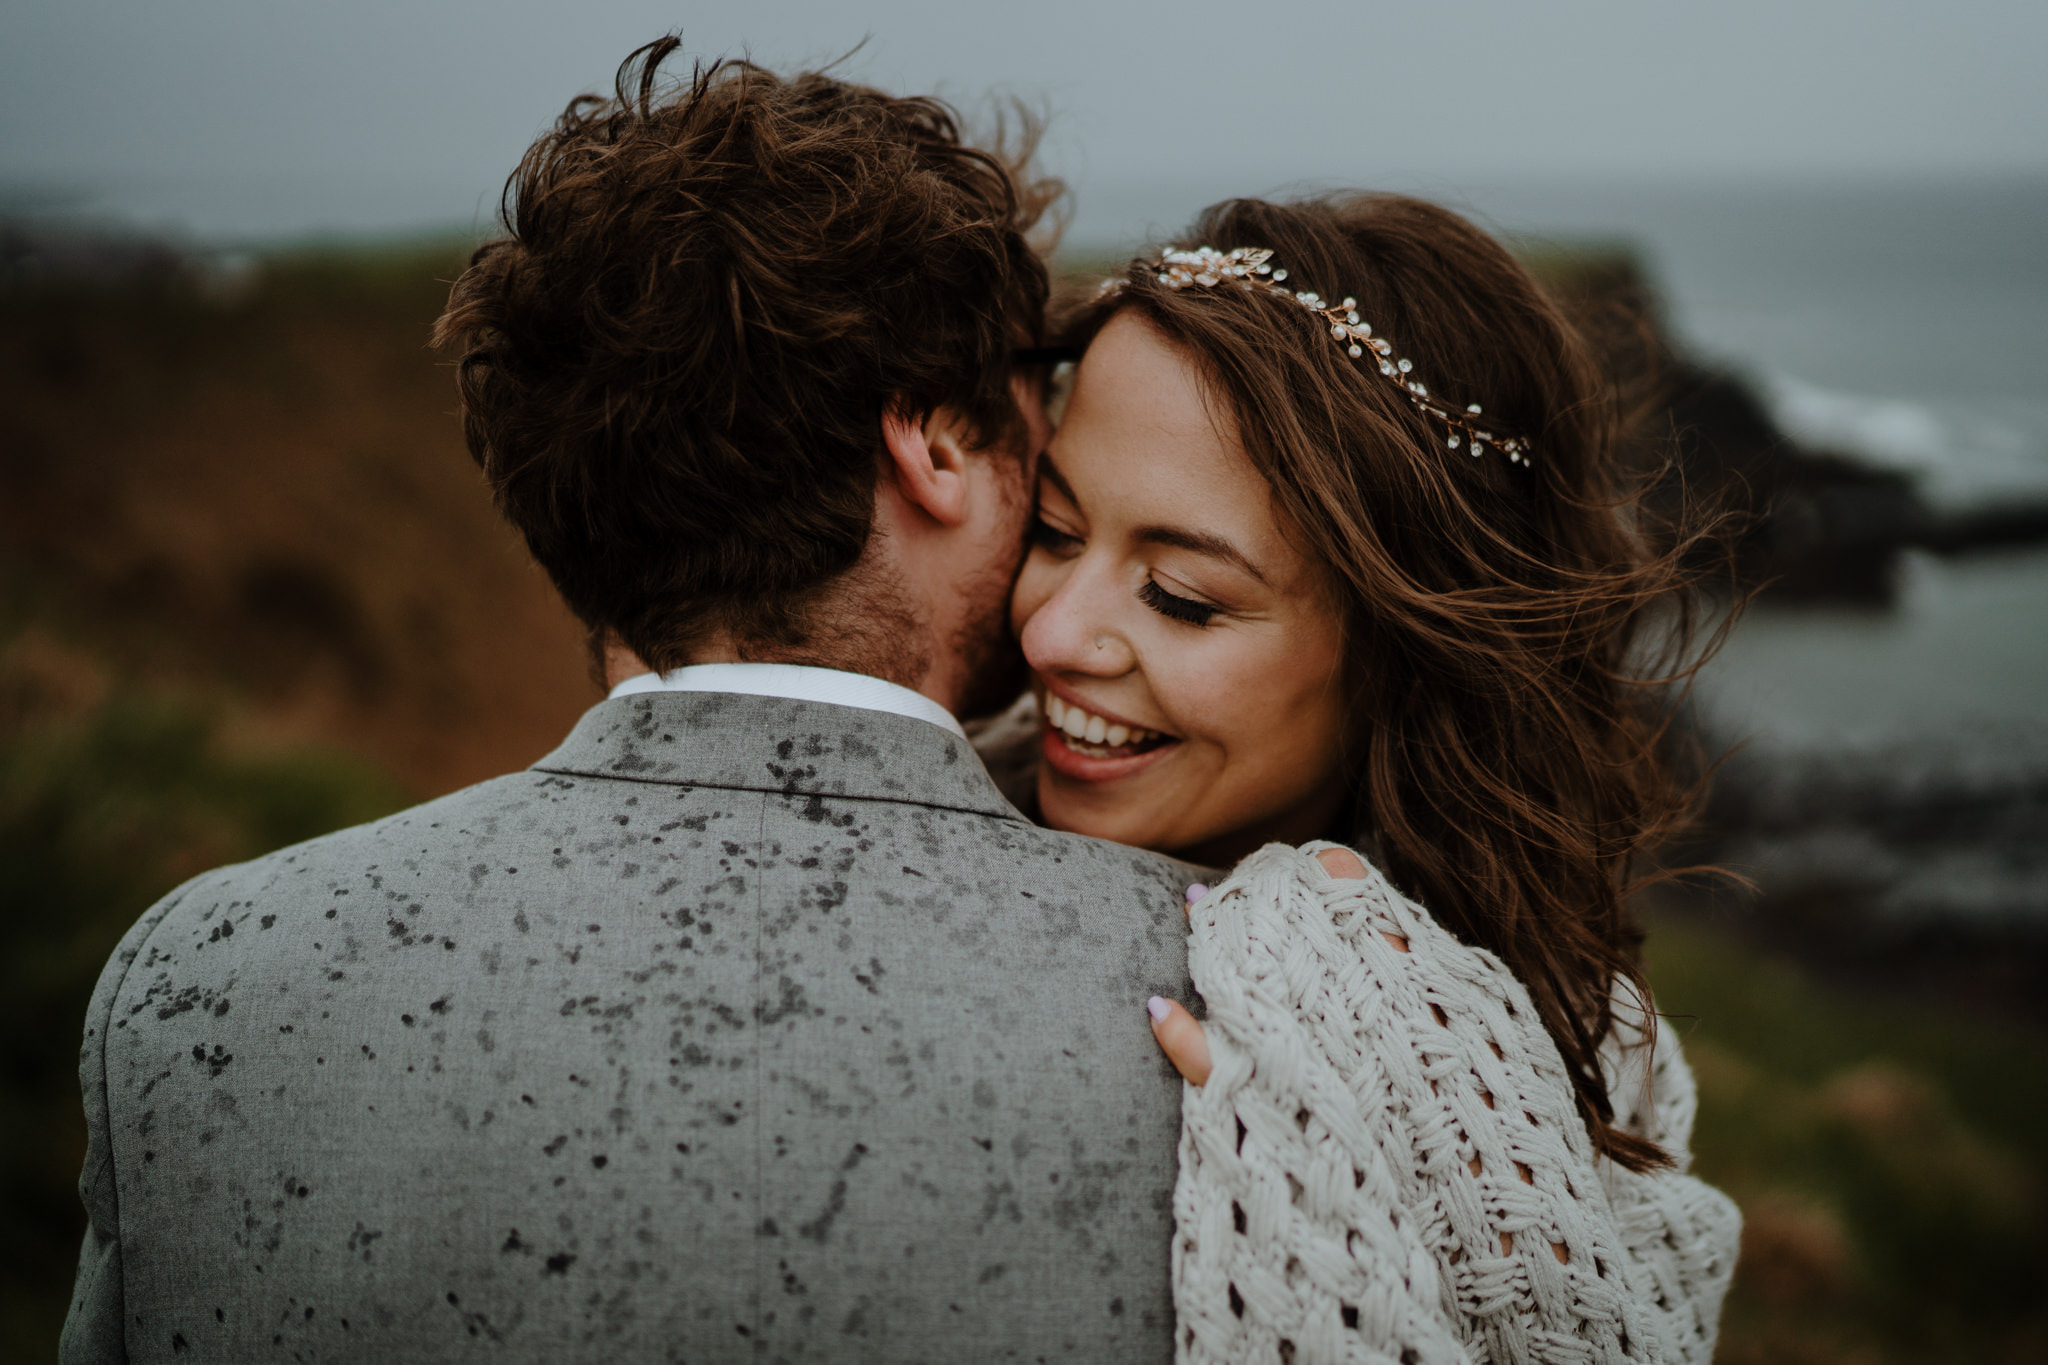 - We are in awe, the moments you captured are absolutely beautiful and represent our day perfectly. We couldn't be more thankful for this amazing way you captured our special day.Thank you so, so much!